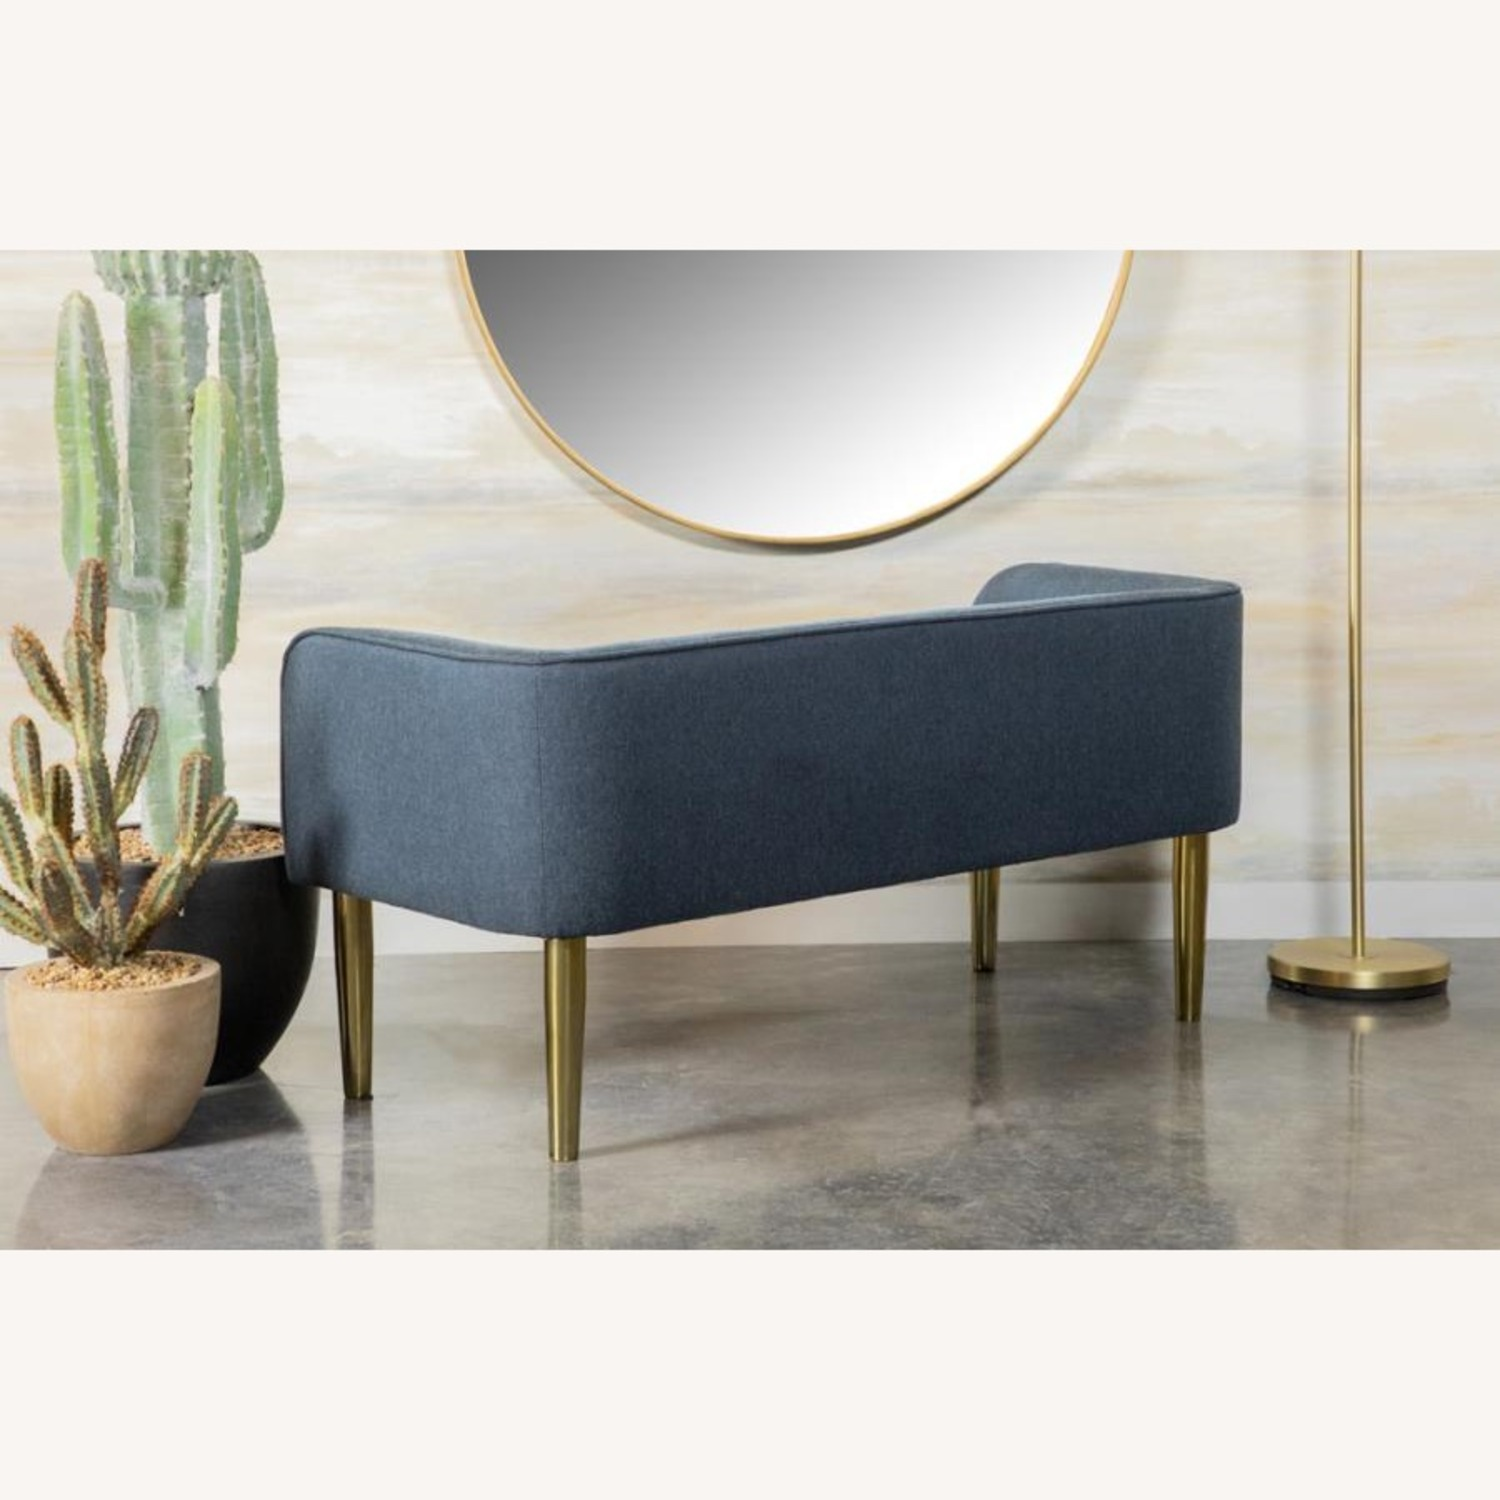 Bench In Blue Woven Fabric W/ Tapered Legs - image-5